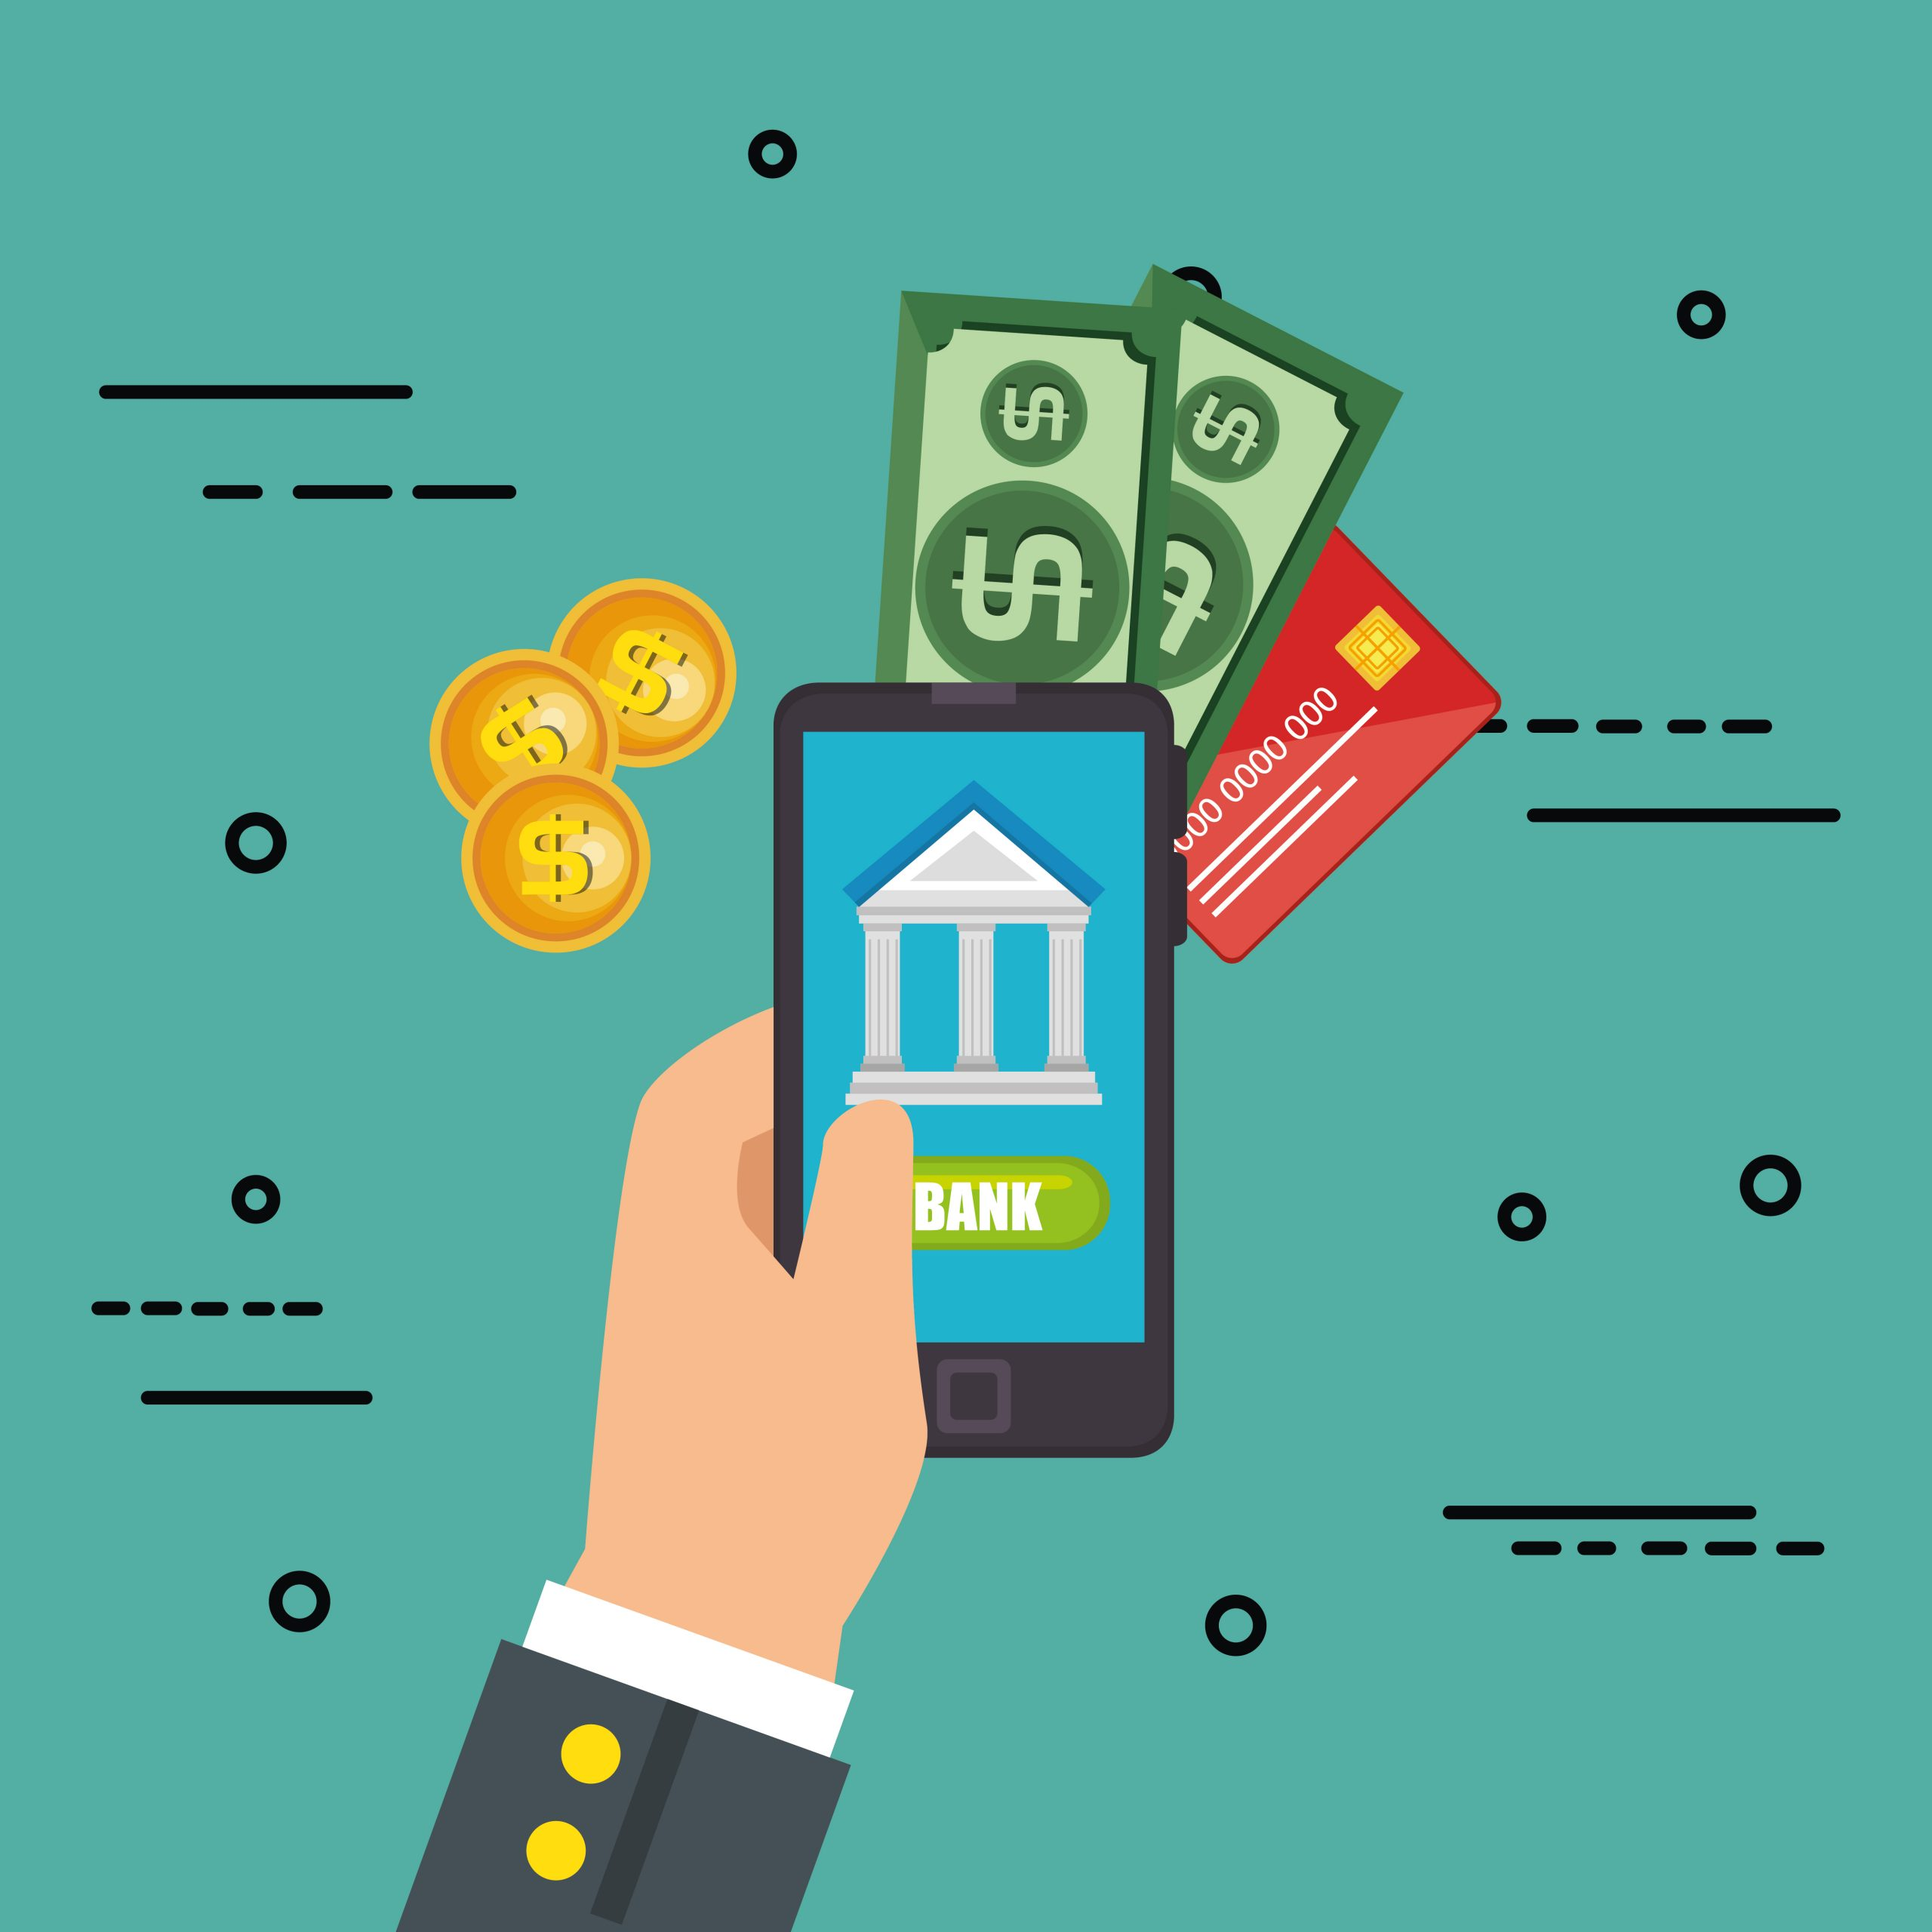 Top 3 Mobile App Development Technologies That Will Reshape Mobile Banking In The Covid-19 Crisis